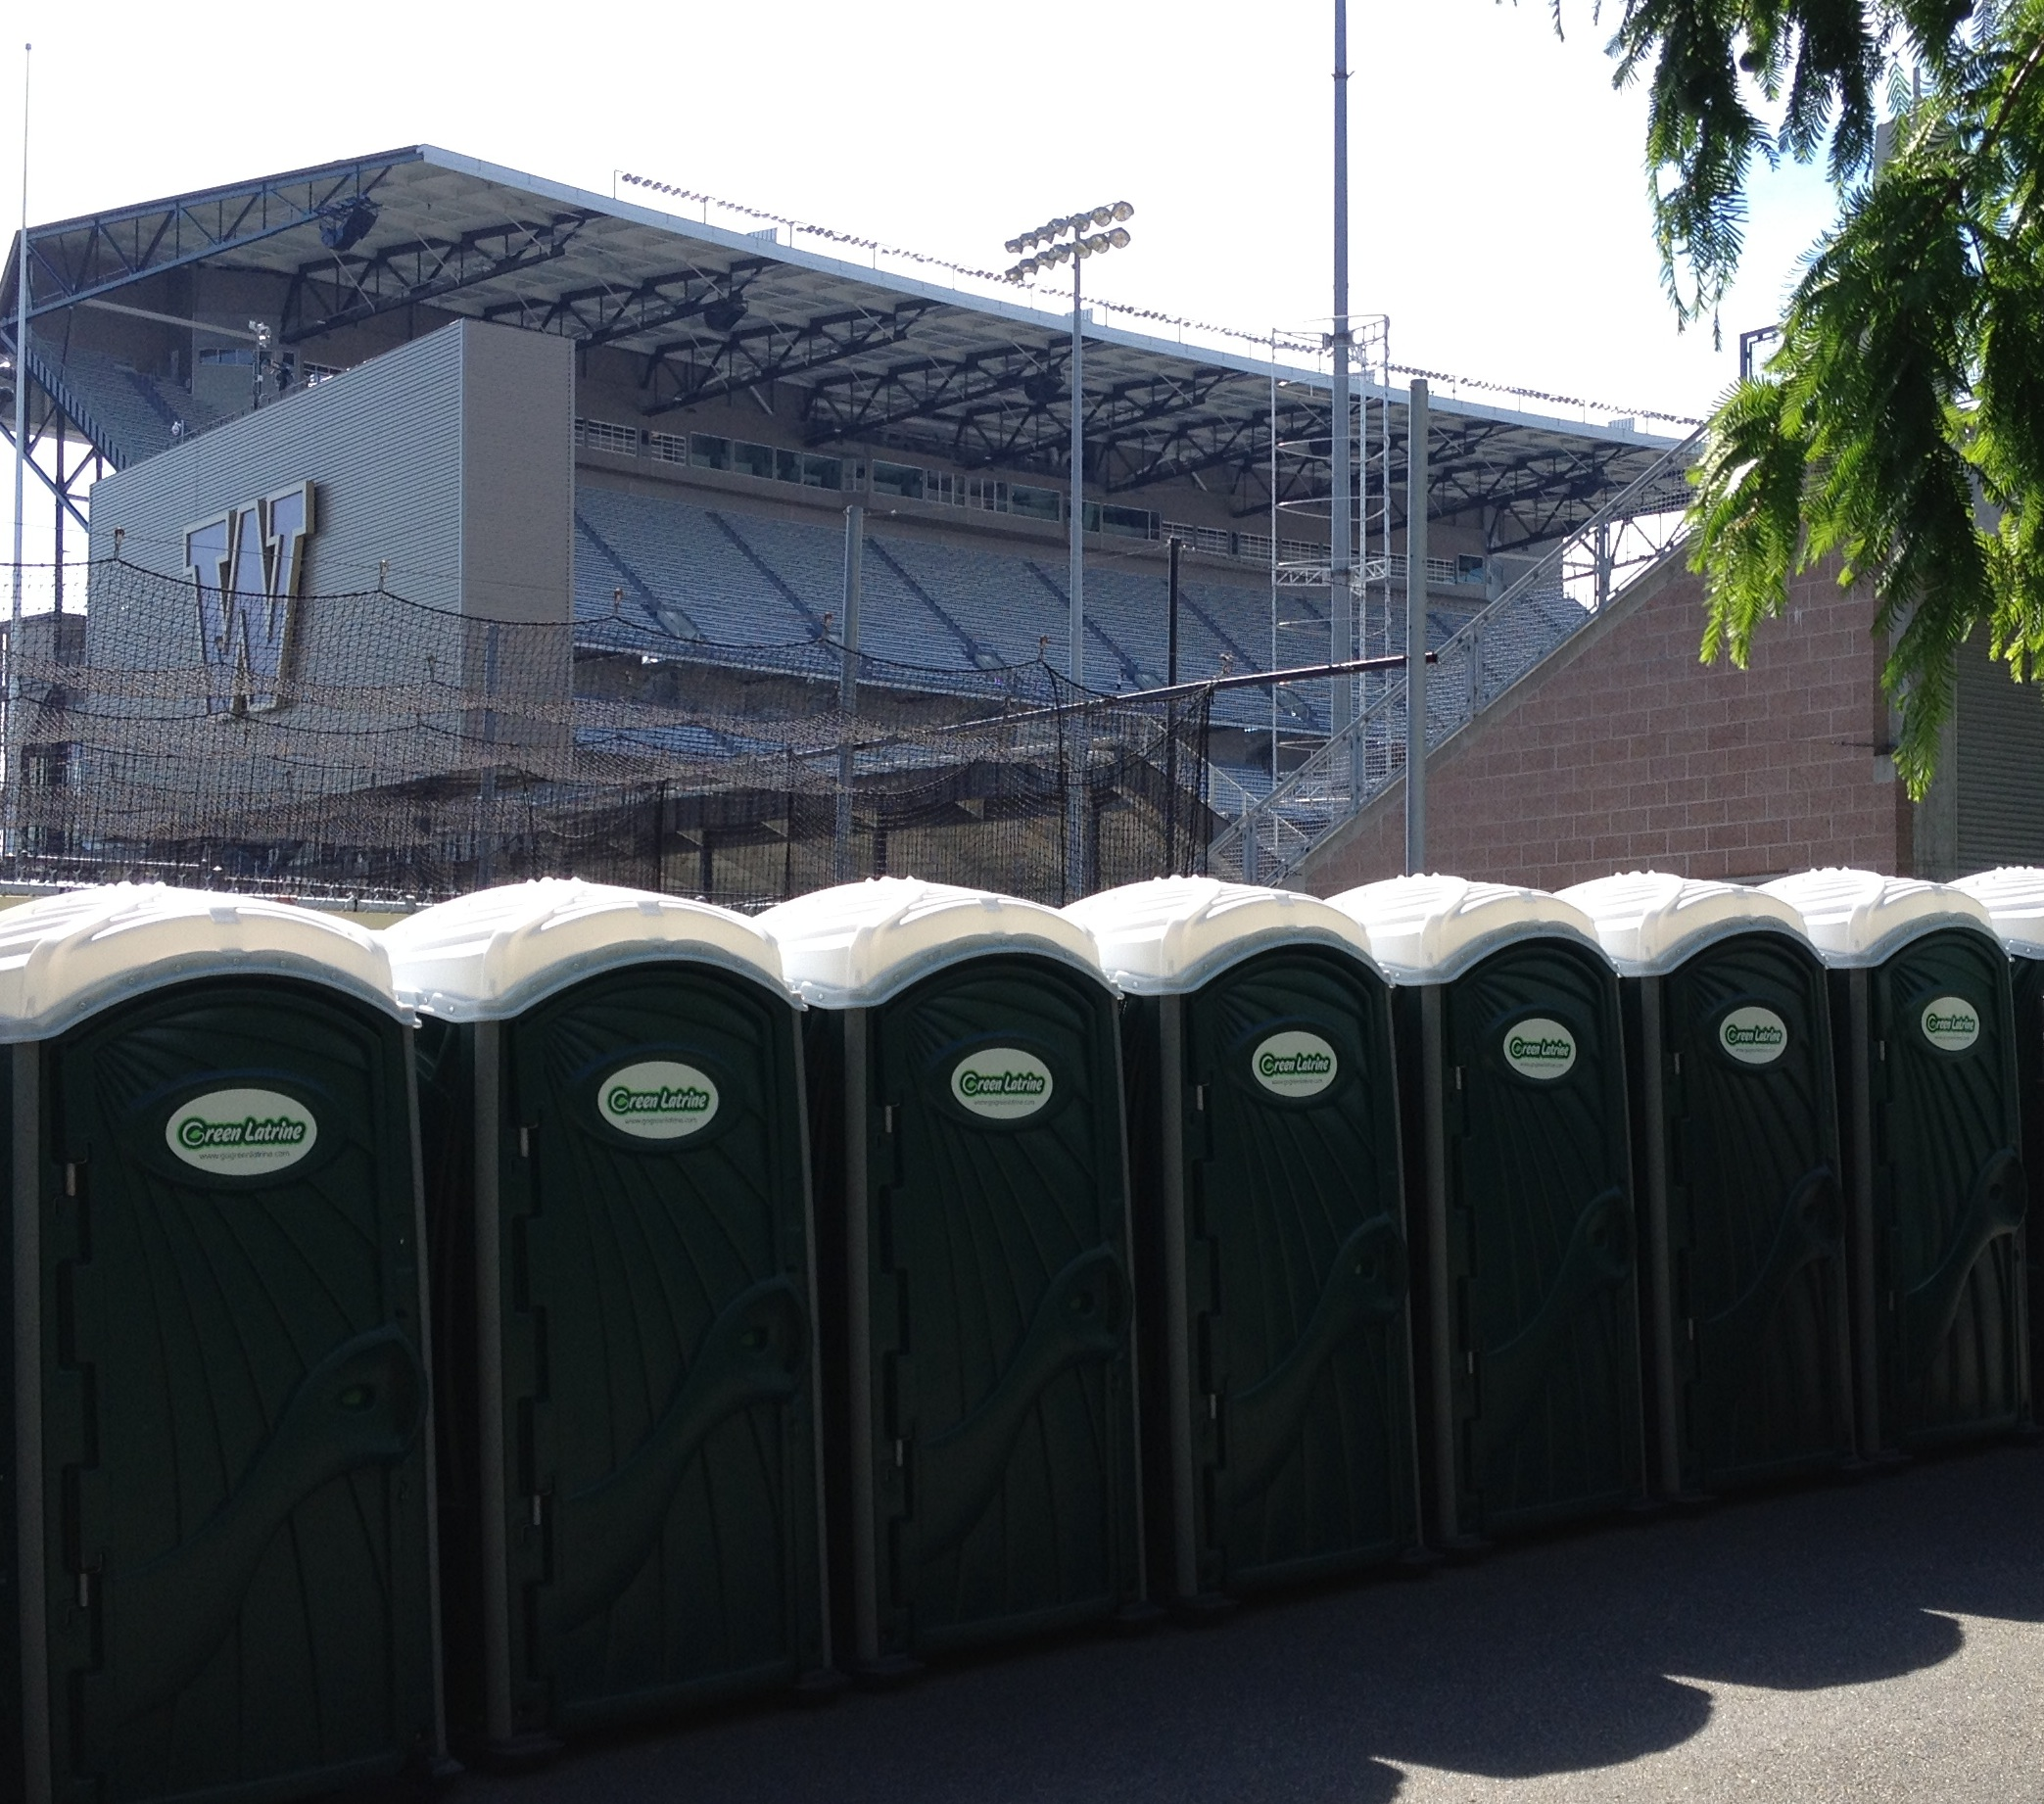 Green Latrine Porta Potty Rental